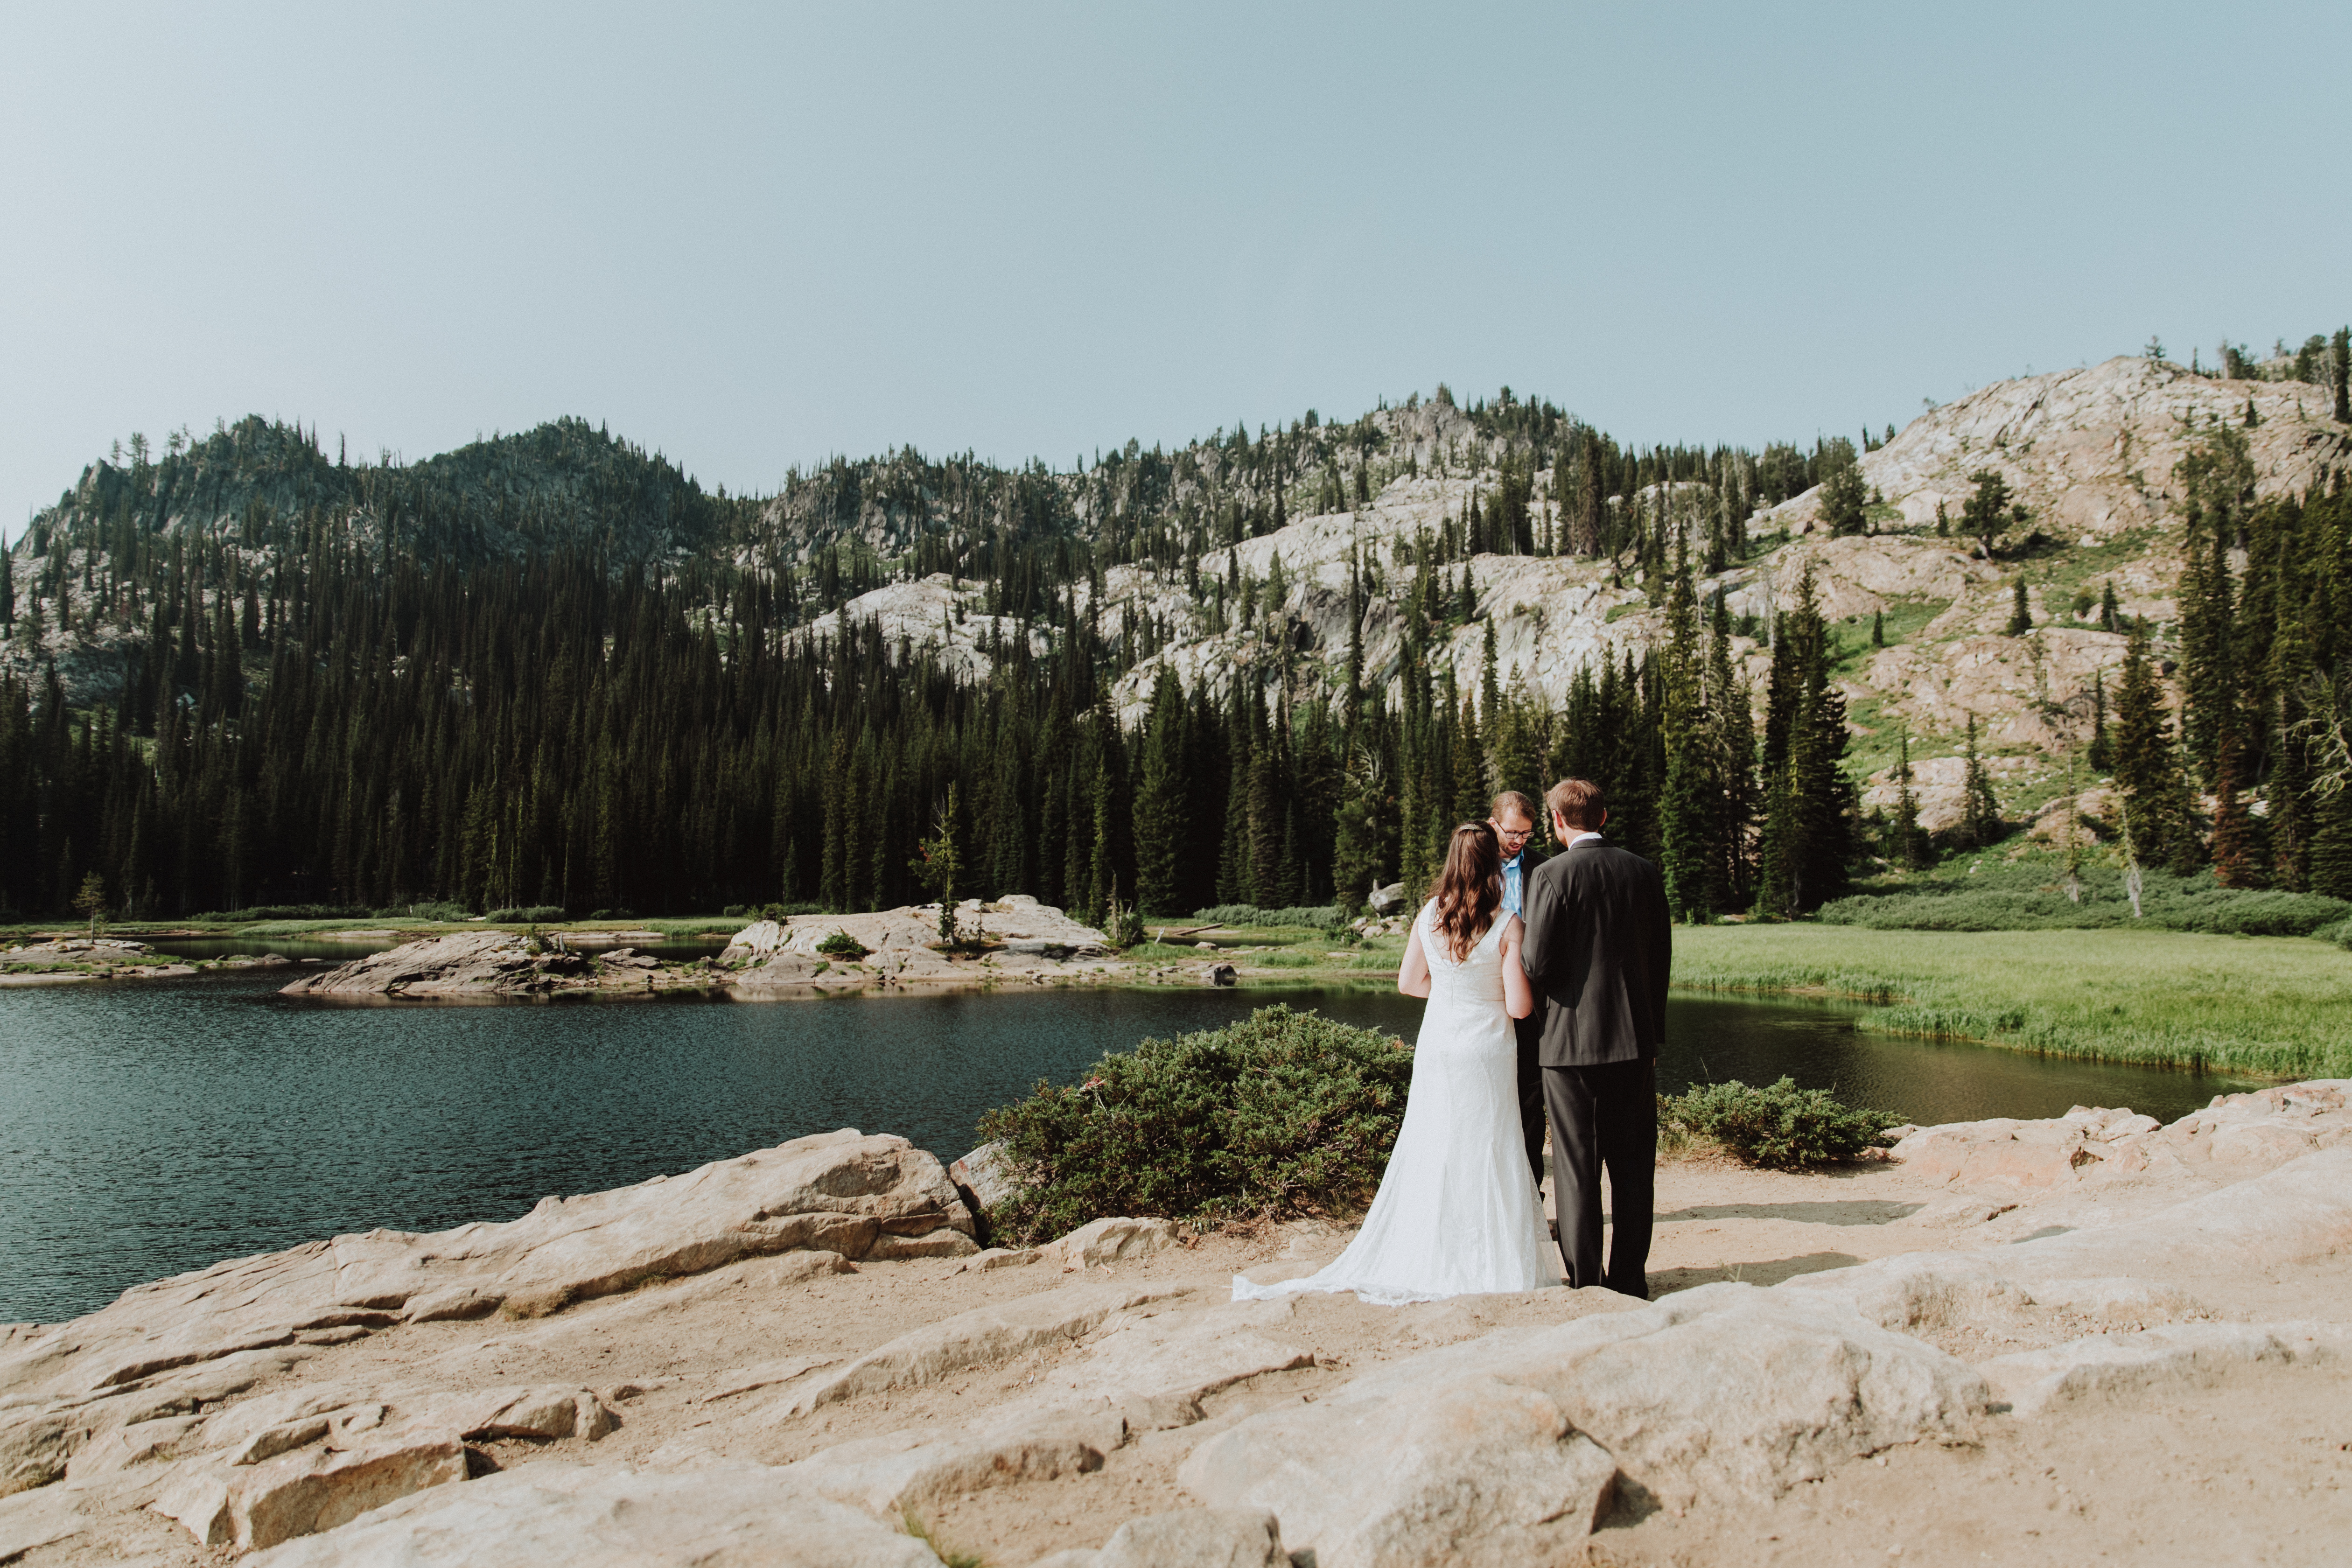 """Elopement Announcements: 4 Ways to Say """"We Eloped!"""""""